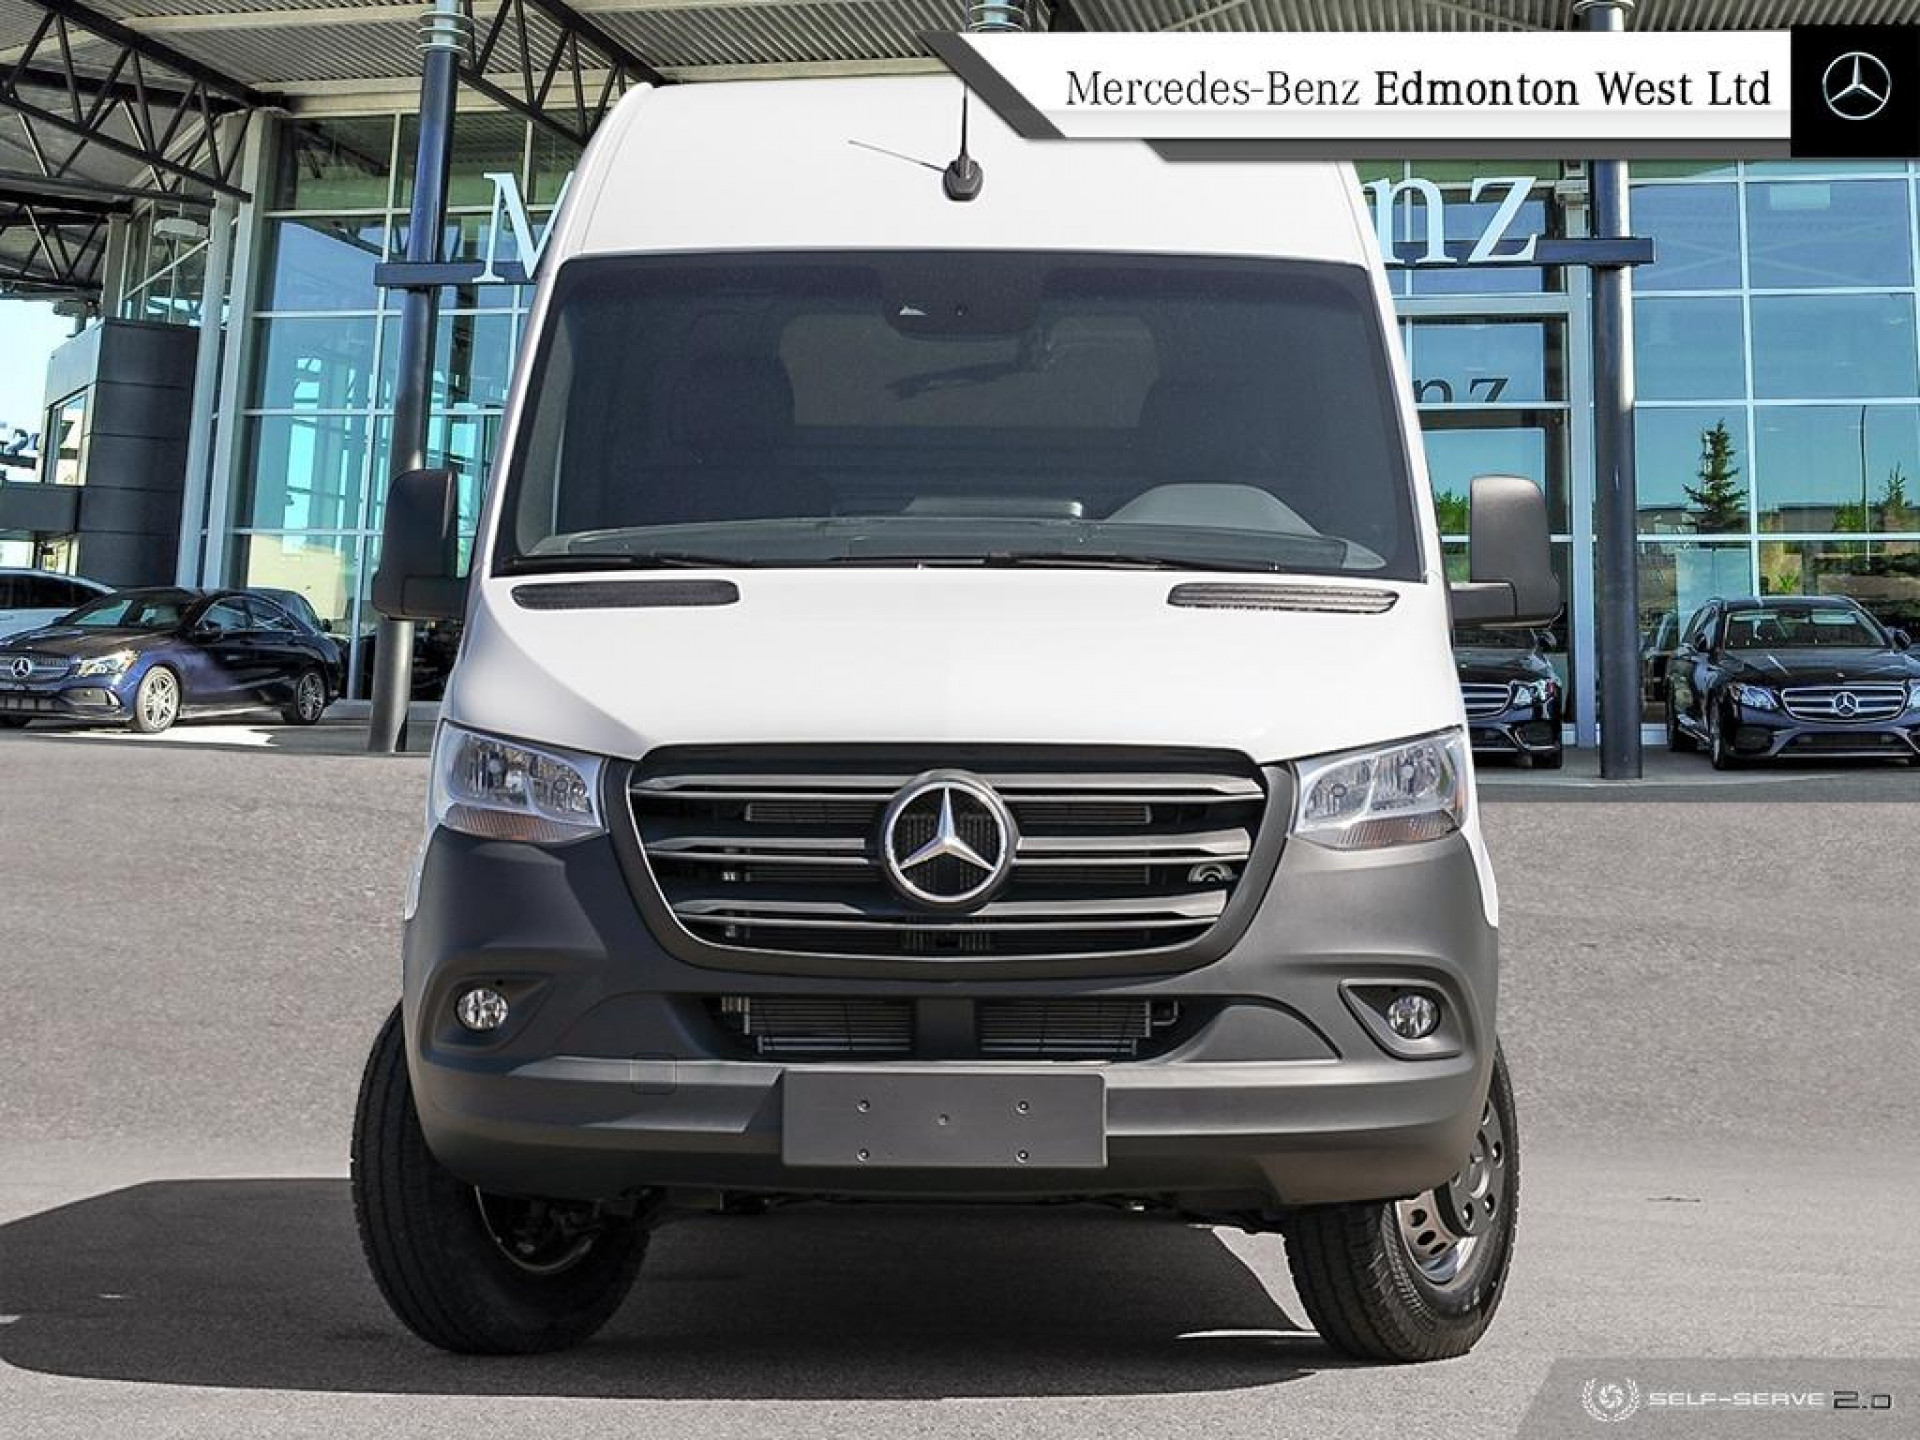 "Pre-Owned 2019 Mercedes Benz Sprinter Cargo Van 3500 High Roof V6 170"" Demo Unit - Save $8500"